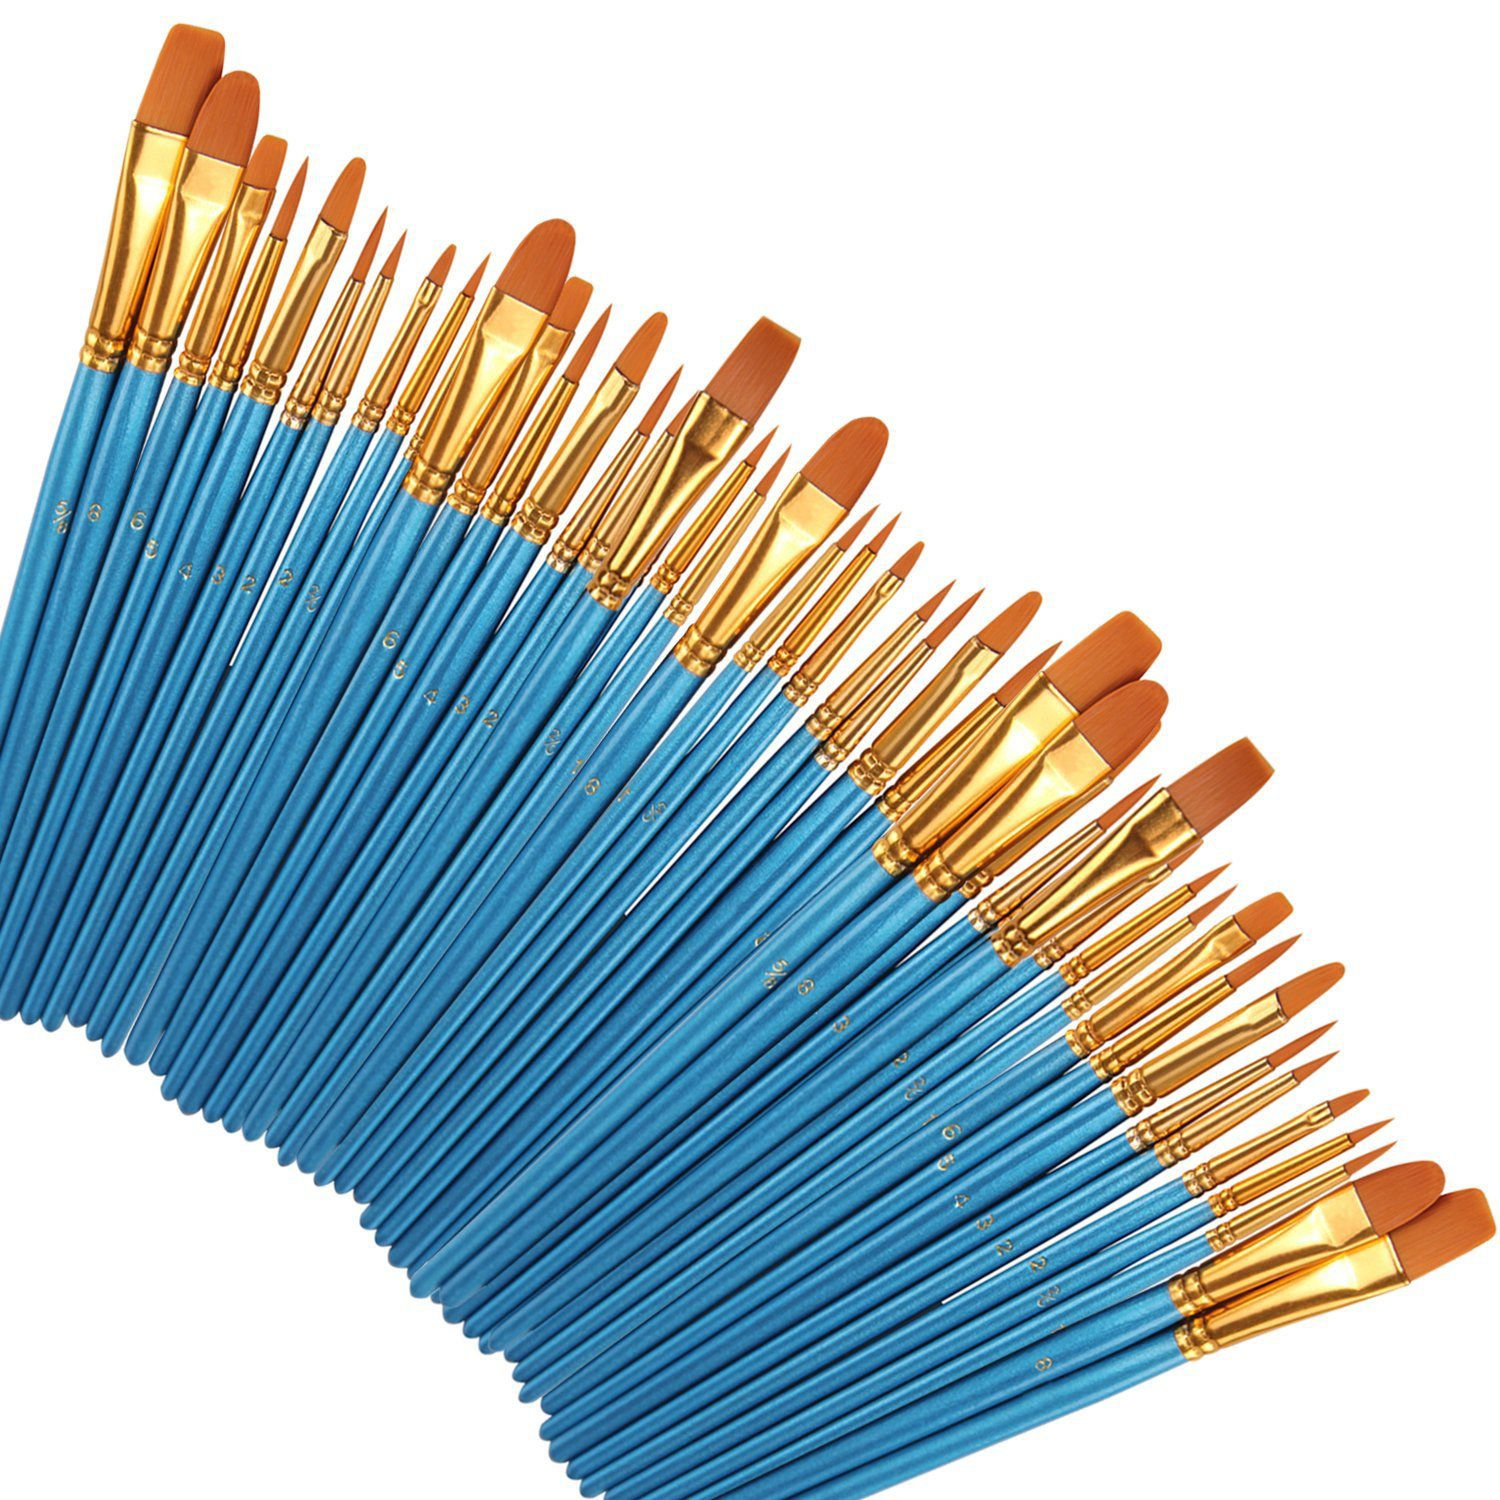 Paint Brushes 50 Pcs, heartybay Nylon Hair Brushes Set Acrylic Blue Round Pointed Paints Brush for Watercolor Oil Painting